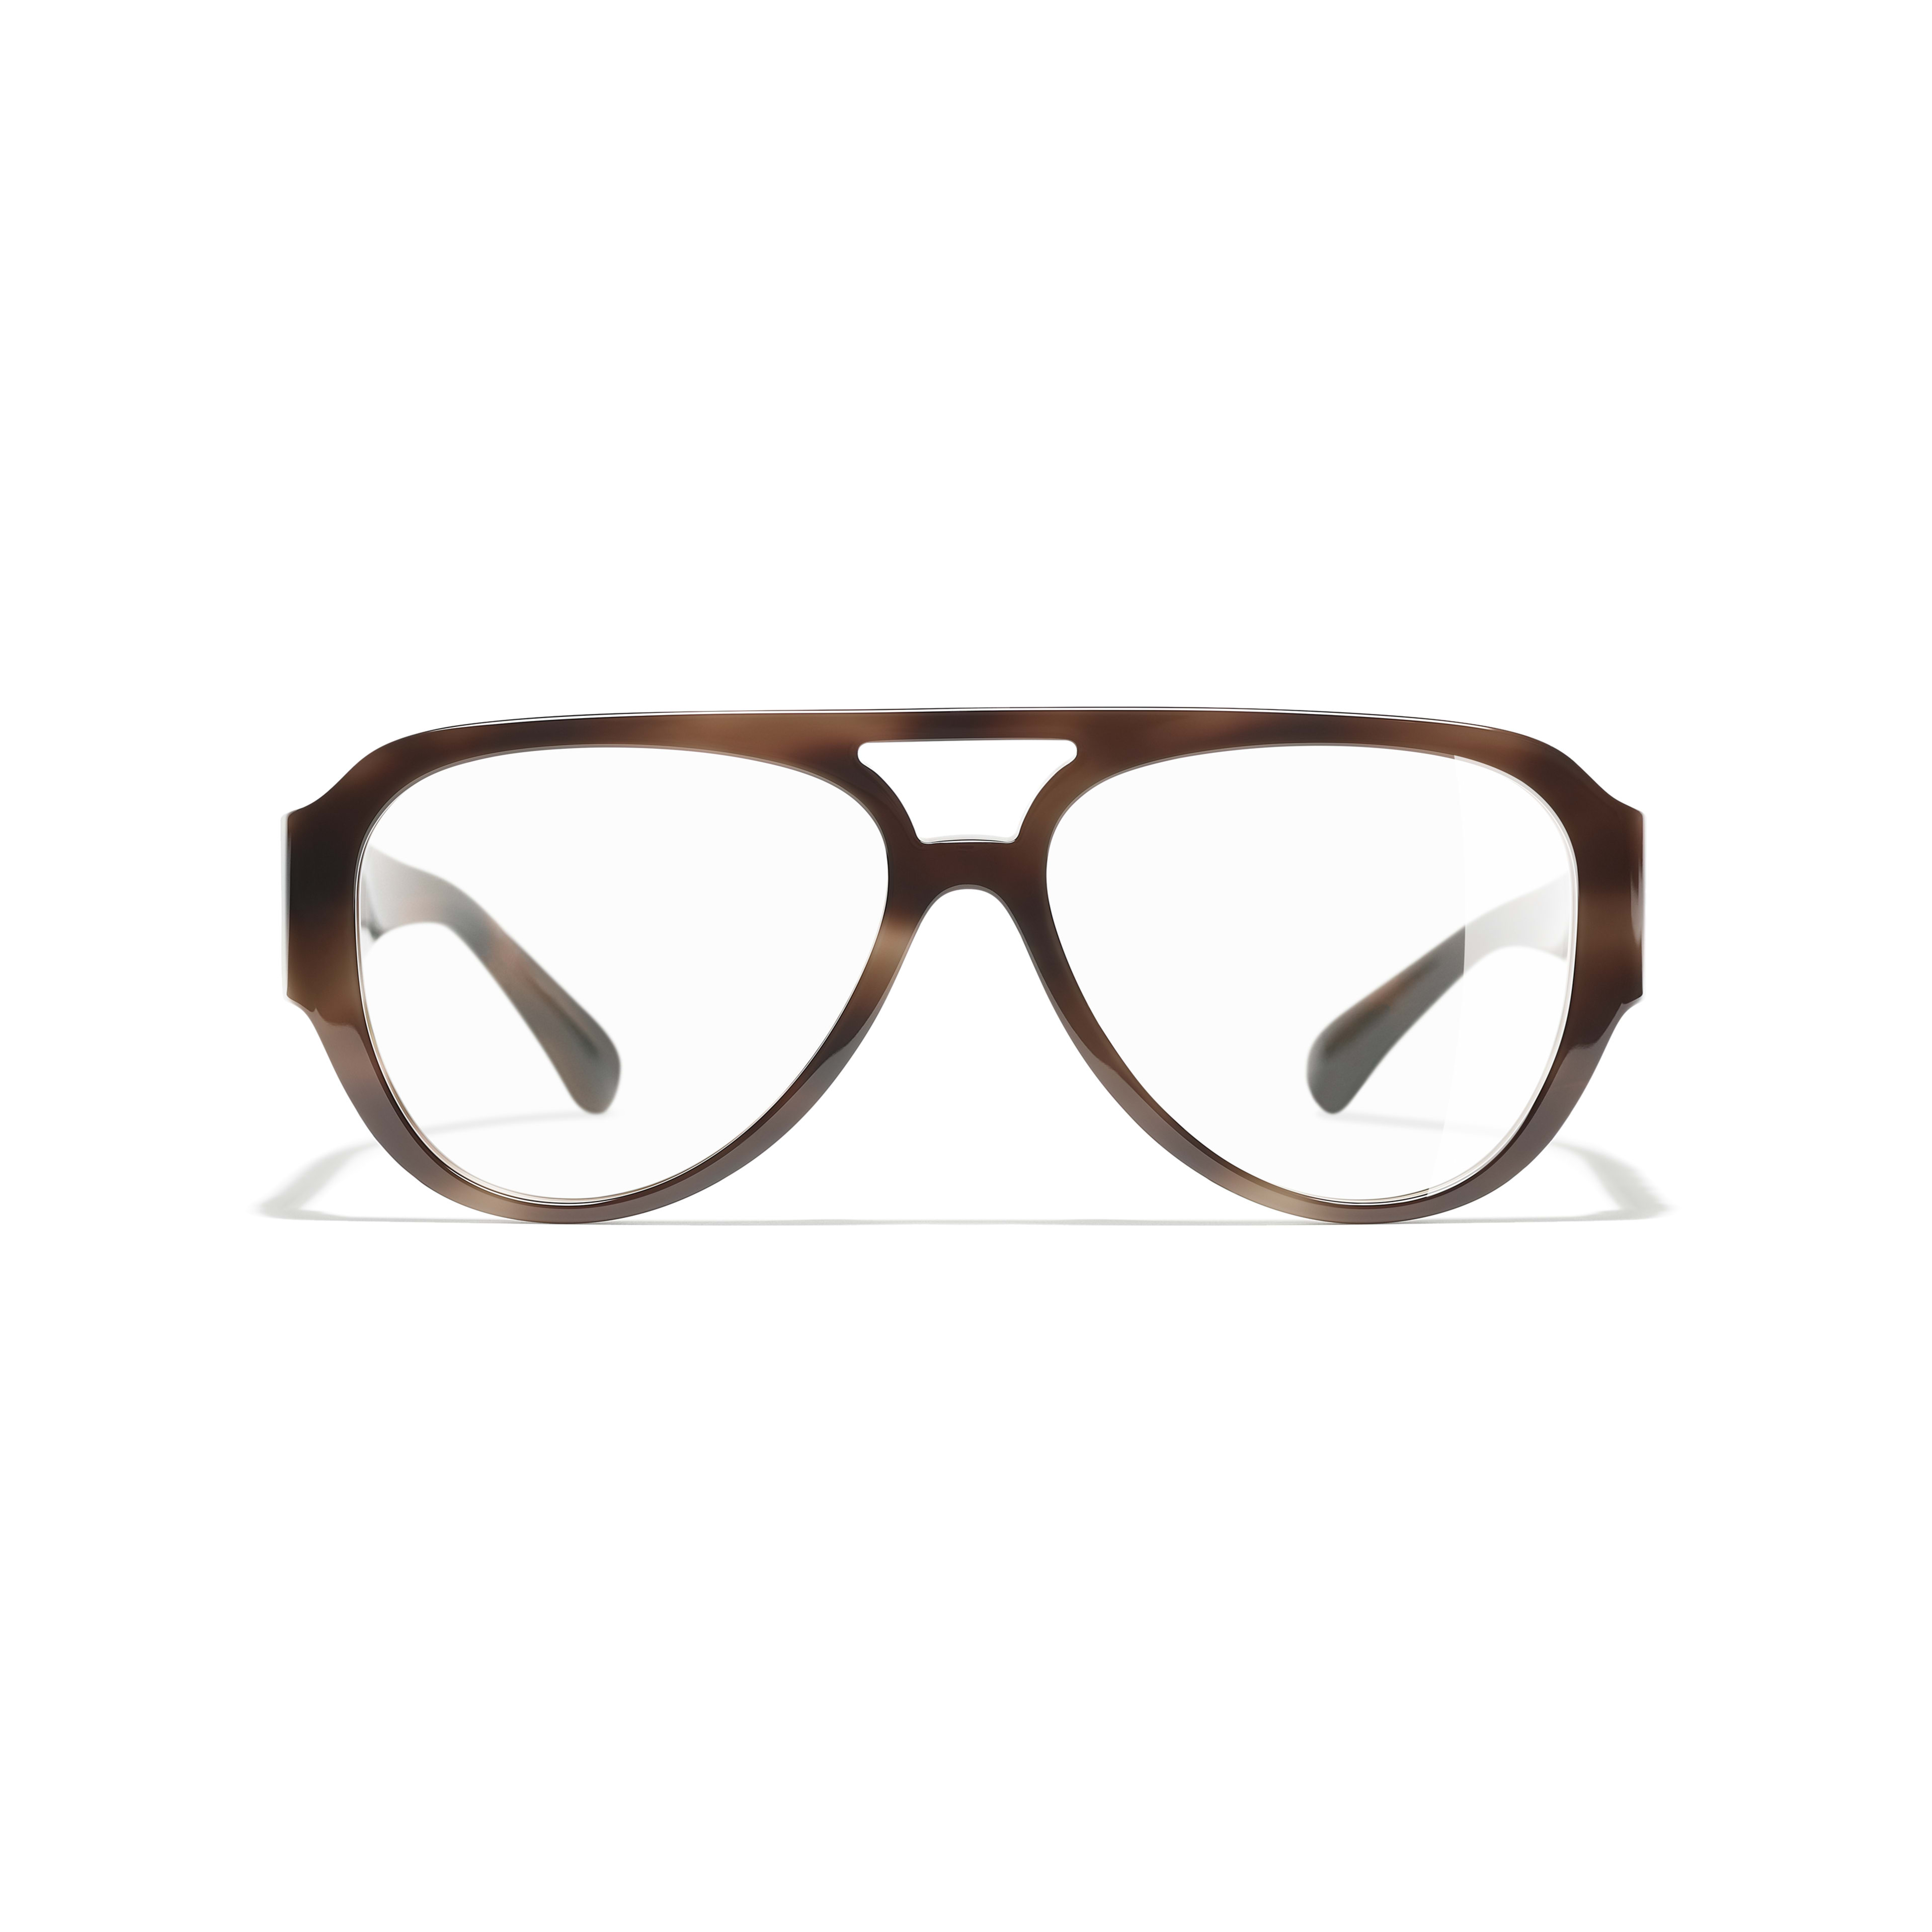 Pilot Eyeglasses - Brown - Acetate & Diamanté - Alternative view - see standard sized version